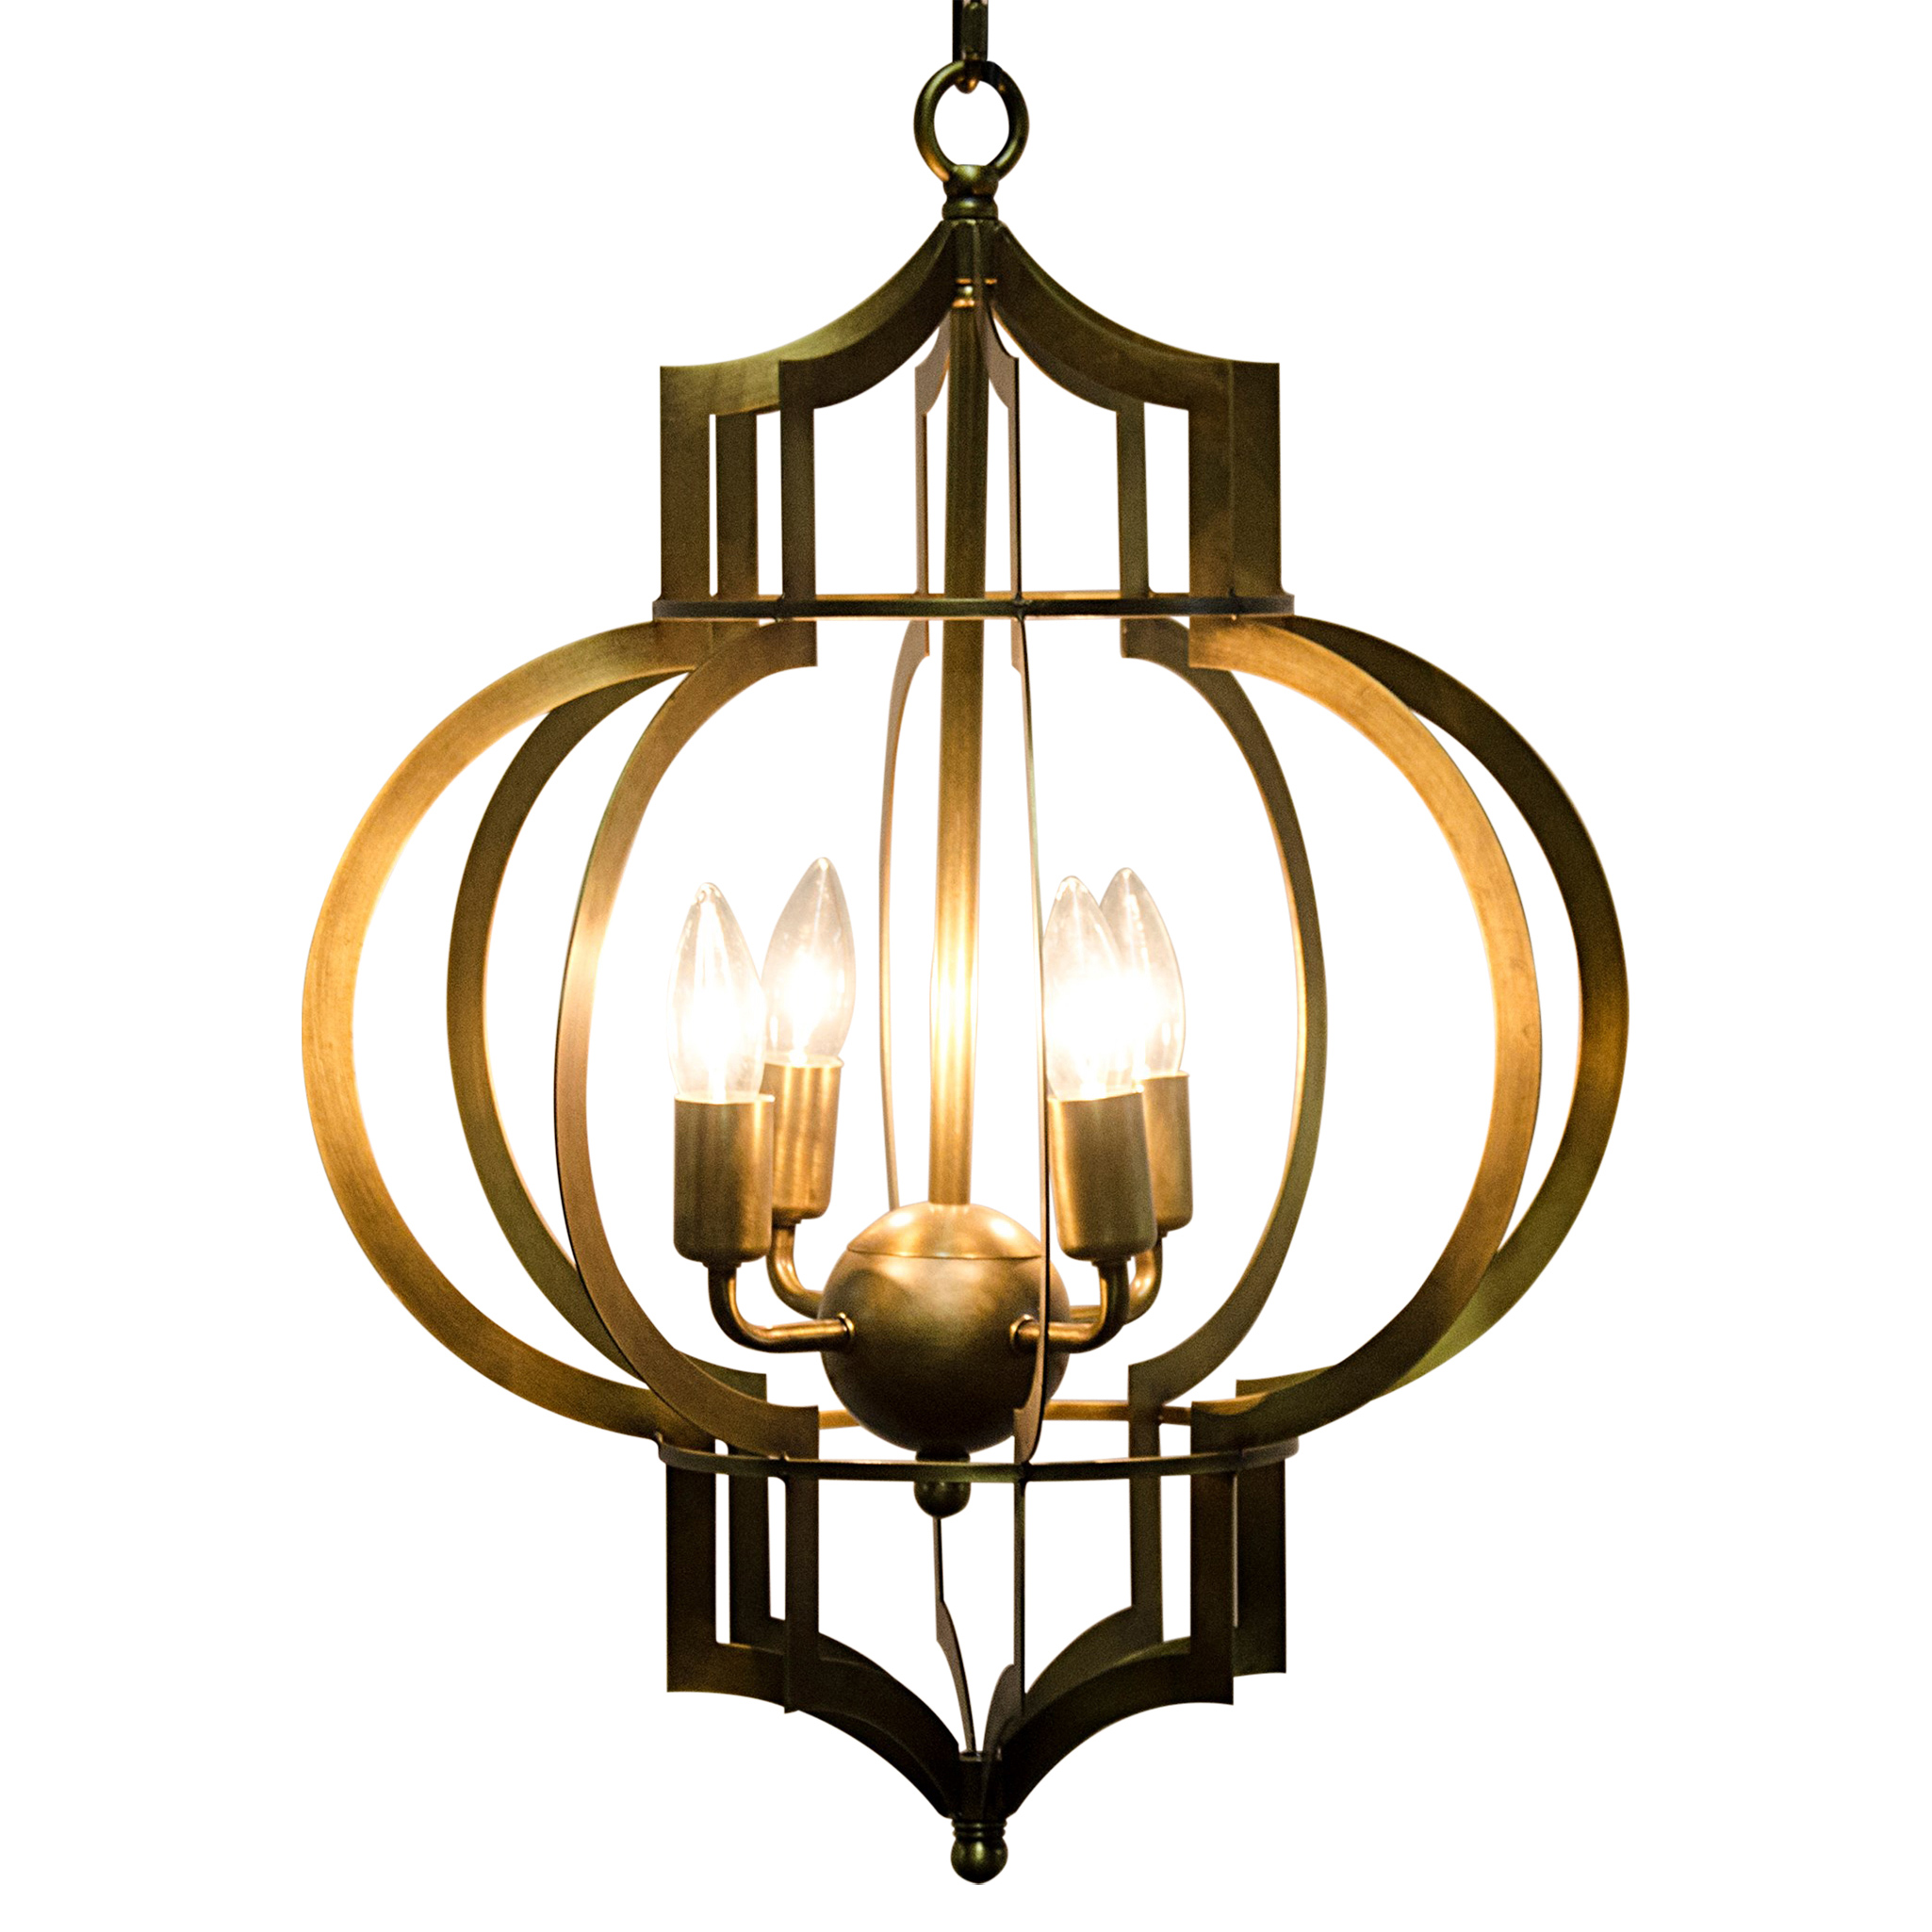 Sri Modern Classic Antique Brass Metal Arabesque Lantern Pendant